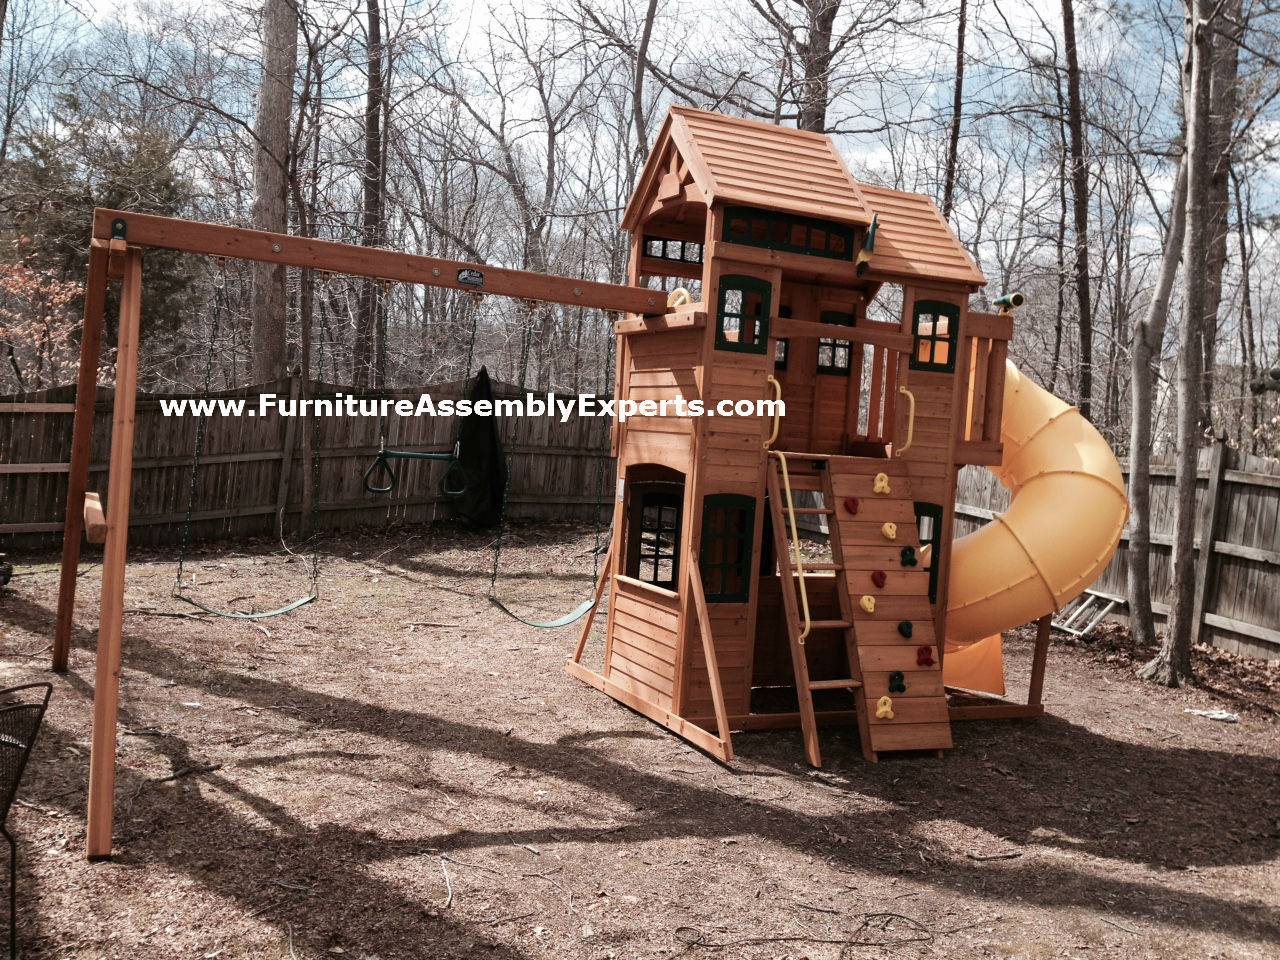 backyard playset assembly service in fort washington MD